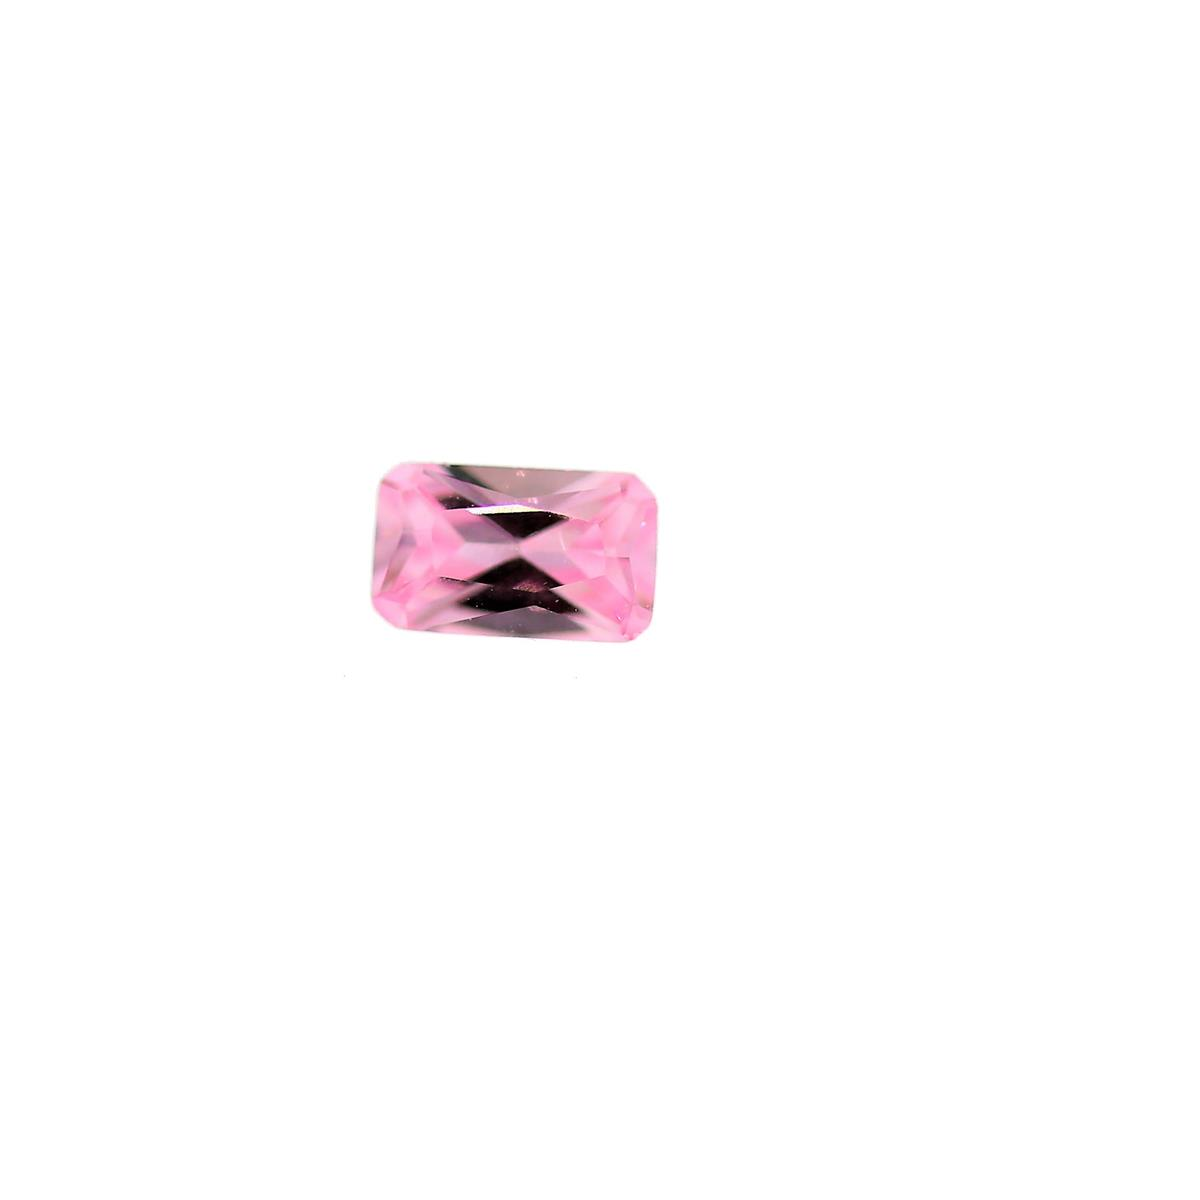 Cubic Zirconia Pink Ice 5x3mm